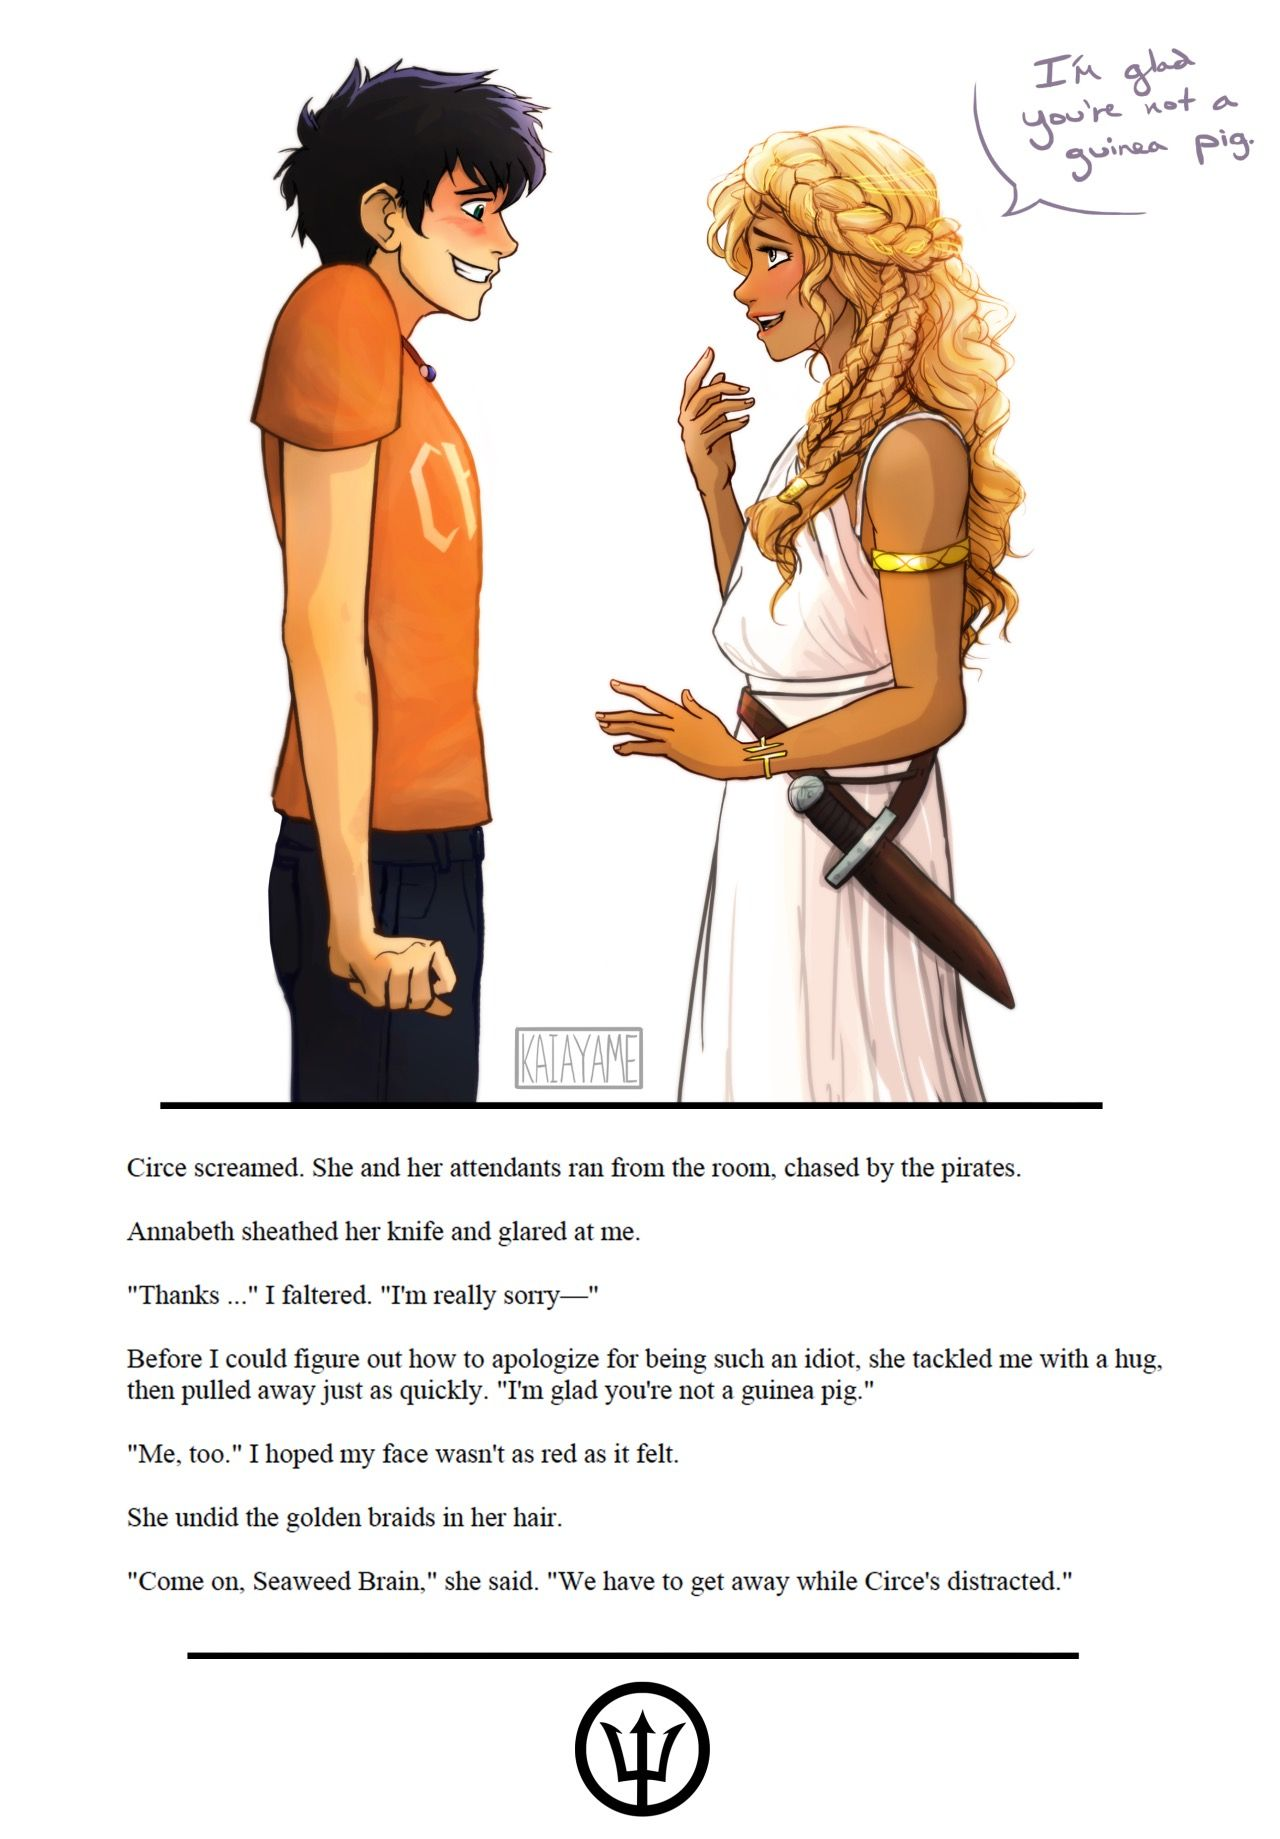 Book Ii The Sea Of Monsters Ch 12 Pg 183 Percy Jackson